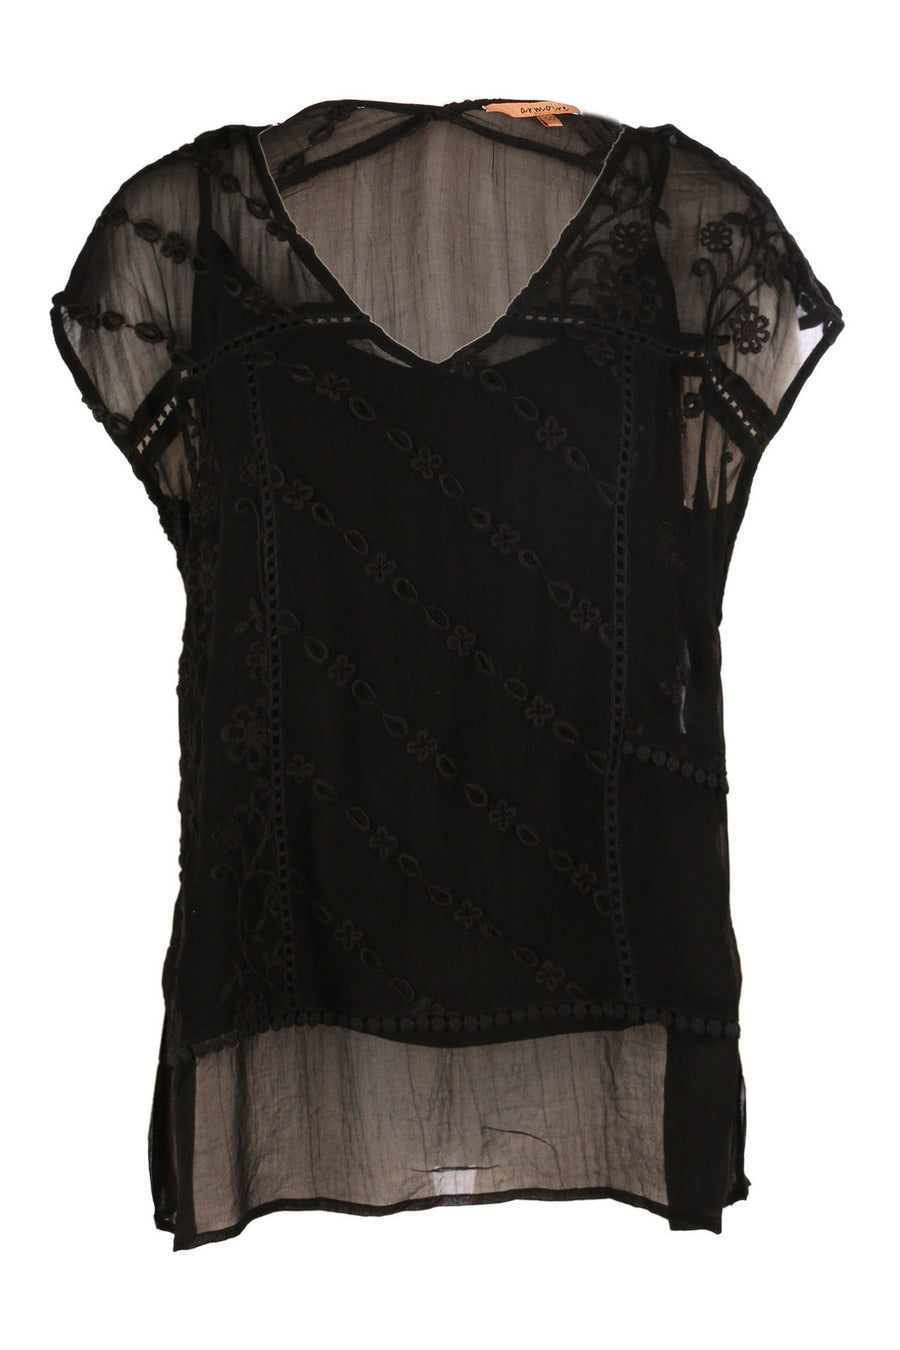 Multi embroidered V Neck by Armoire Frockaholics.com